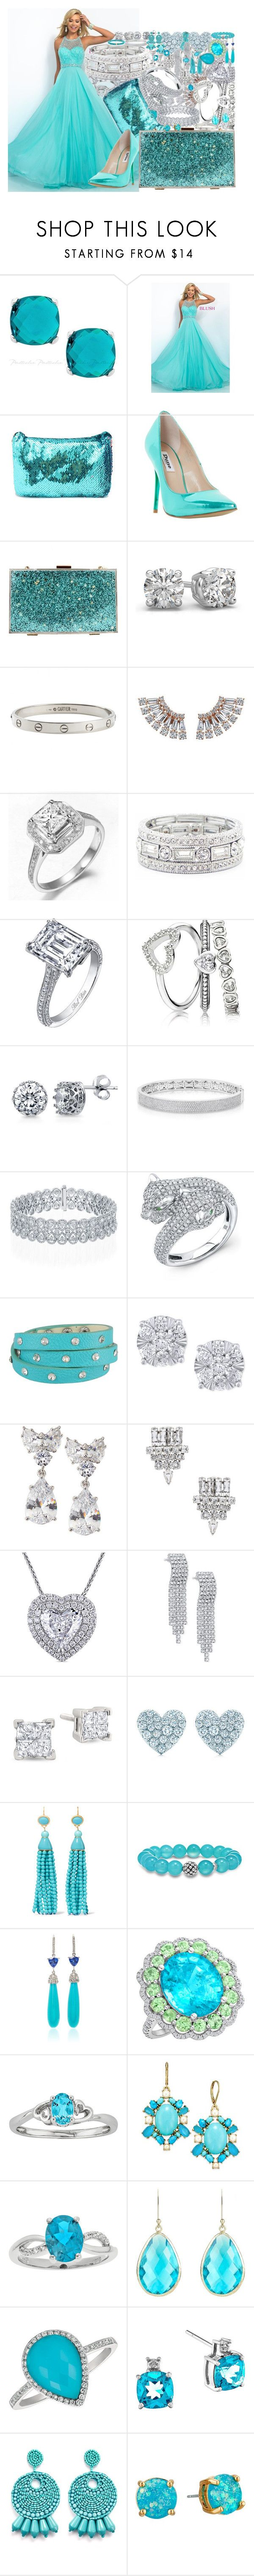 """""""Untitled #4302"""" by brooke-evans12 ❤ liked on Polyvore featuring Cartier, Sole Society, BERRICLE, Anne Sisteron, George J. Love, Effy Jewelry, Fantasia by DeSerio, Yves Saint Laurent, Tiffany & Co. and Kenneth Jay Lane"""